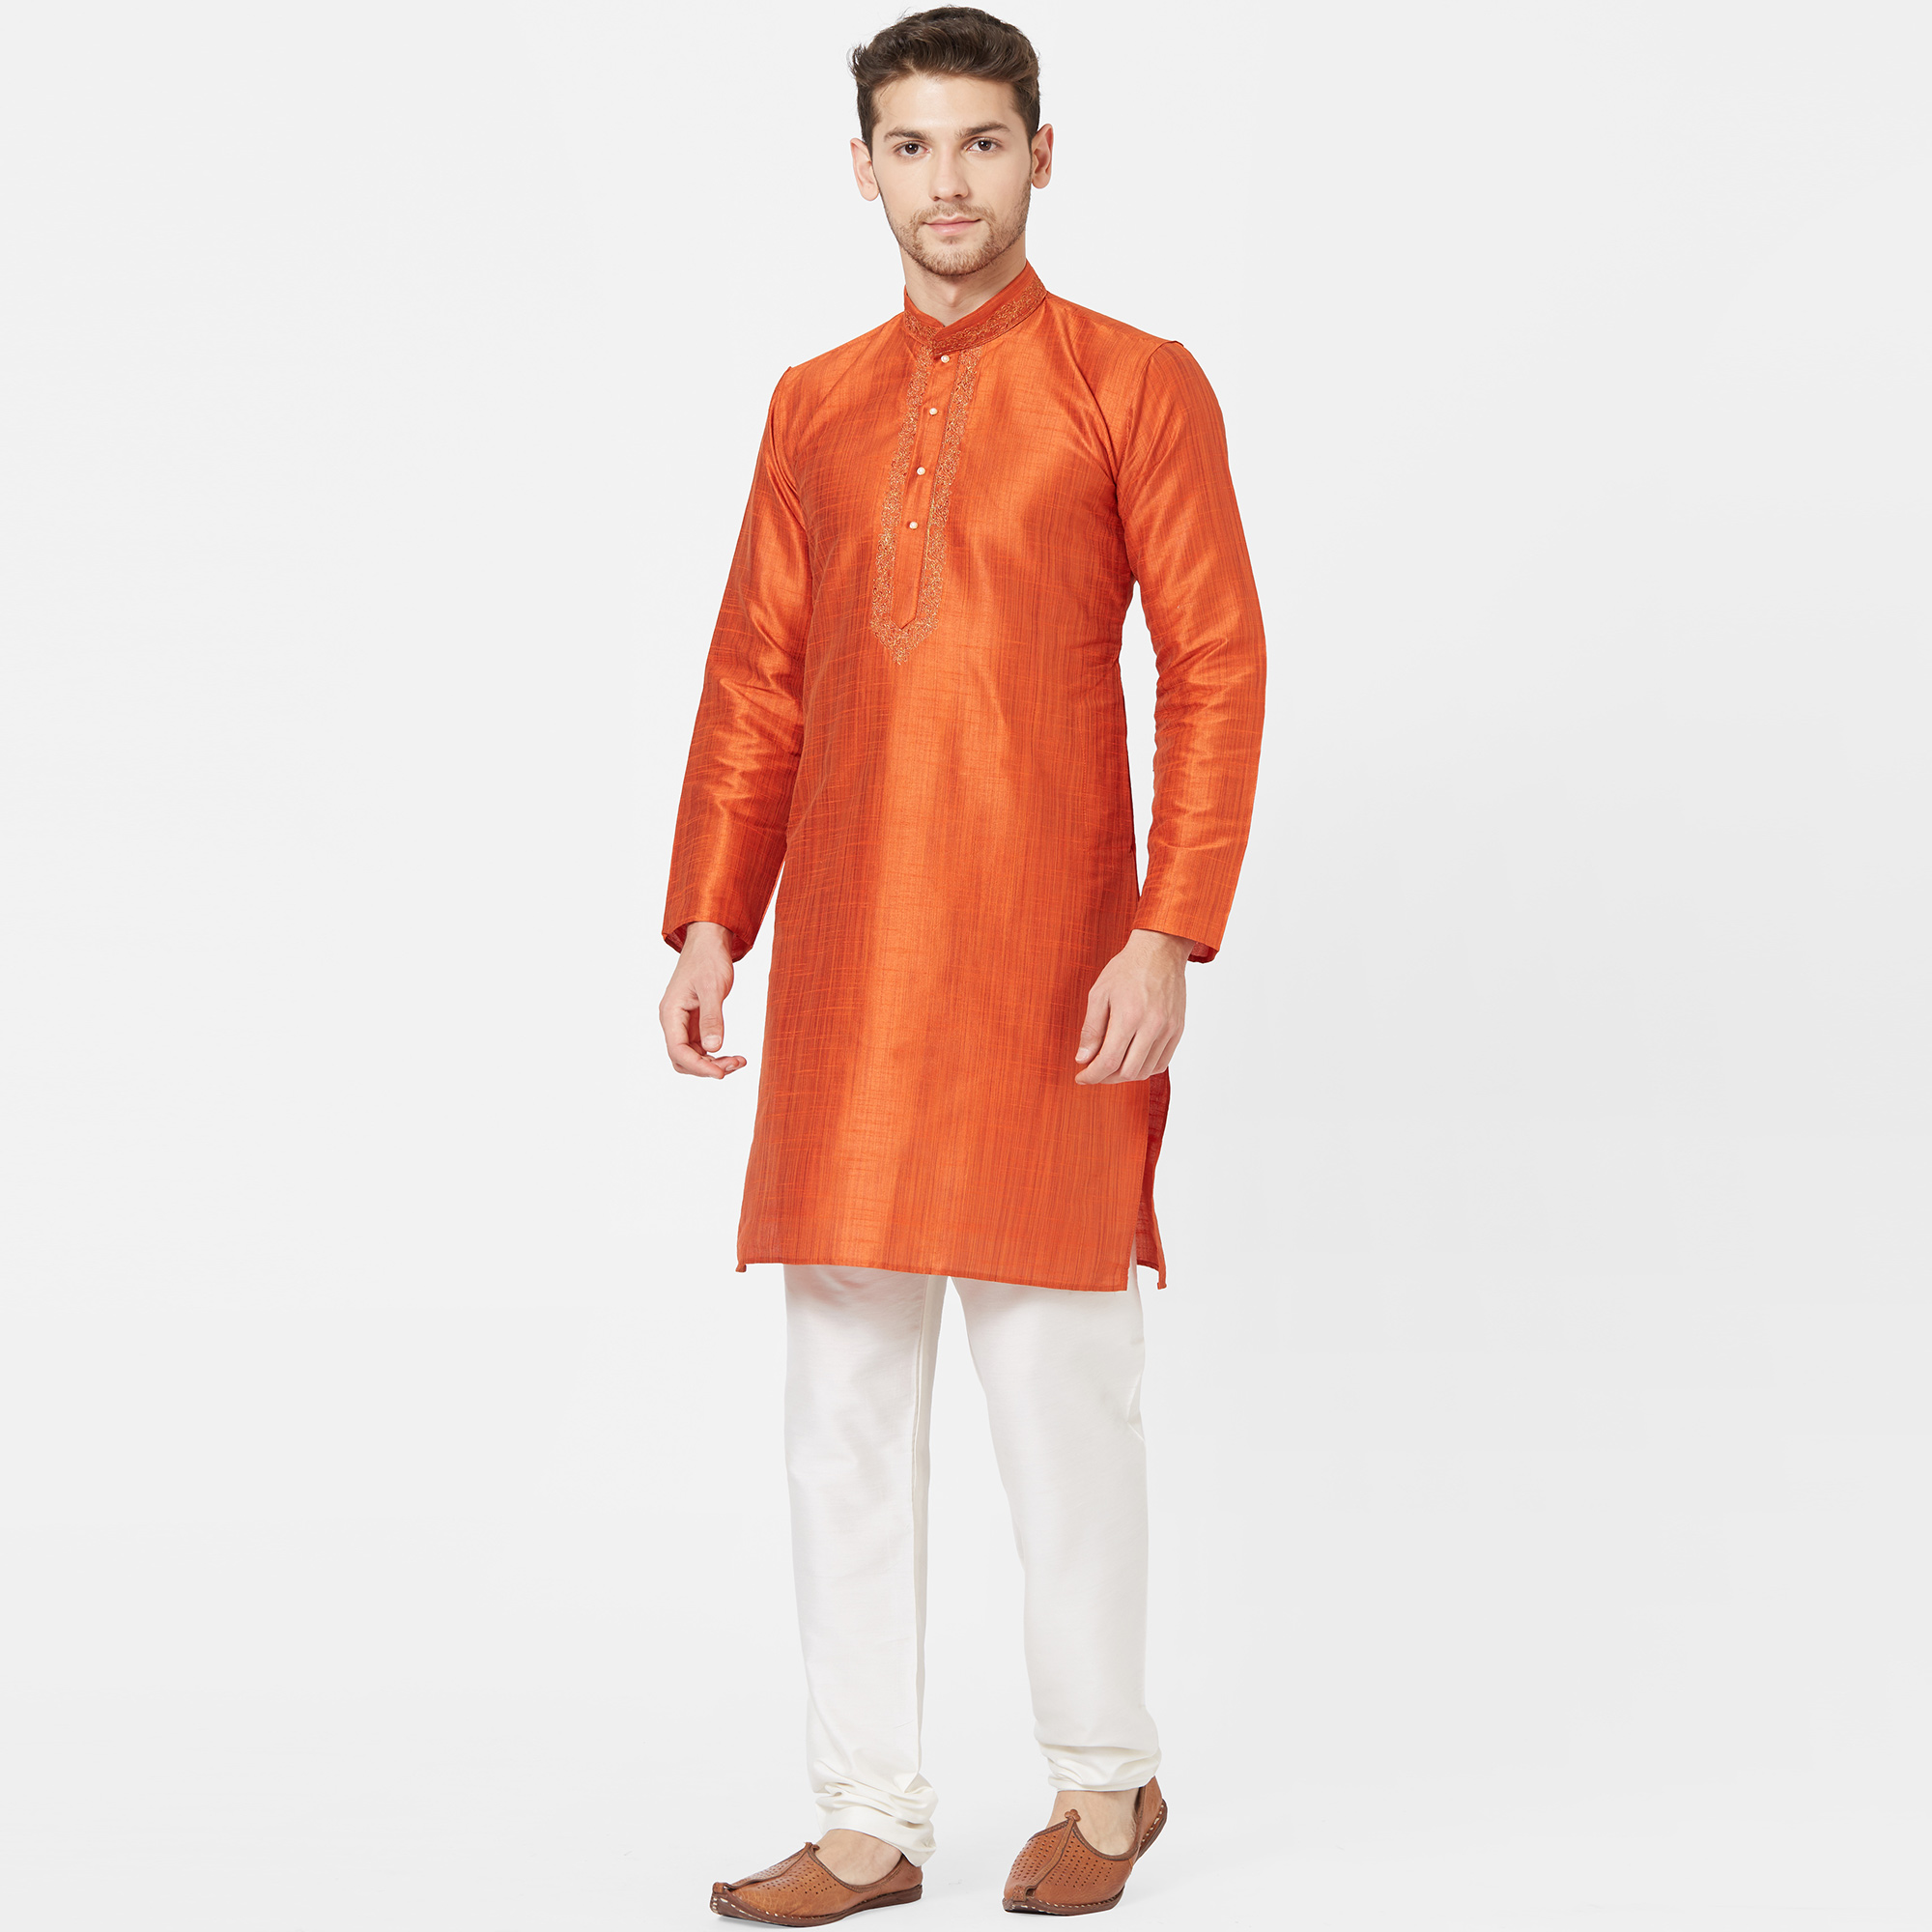 Unique Orange Colored Festive Wear Cotton Kurta